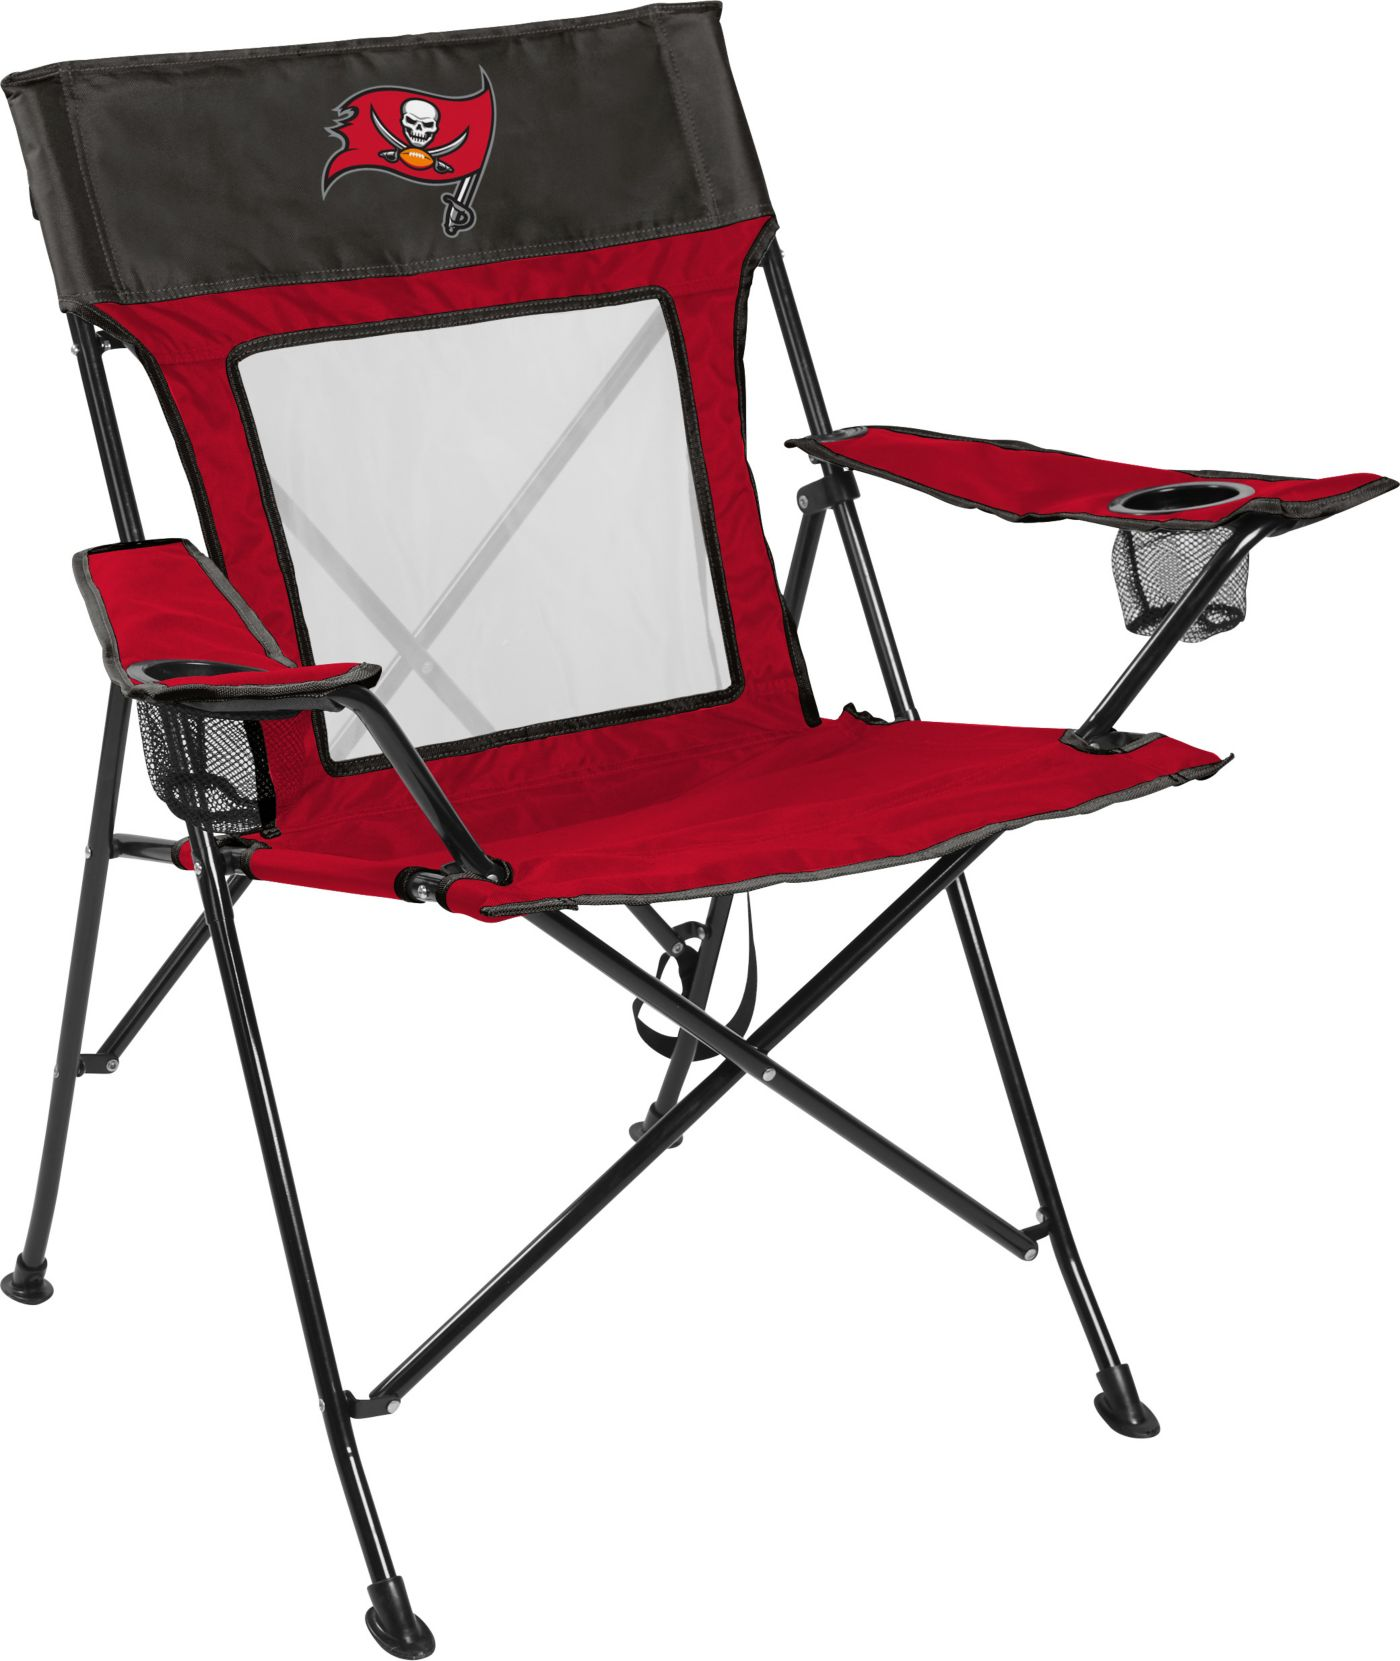 Rawlings Tampa Bay Buccaneers Game Changer Chair